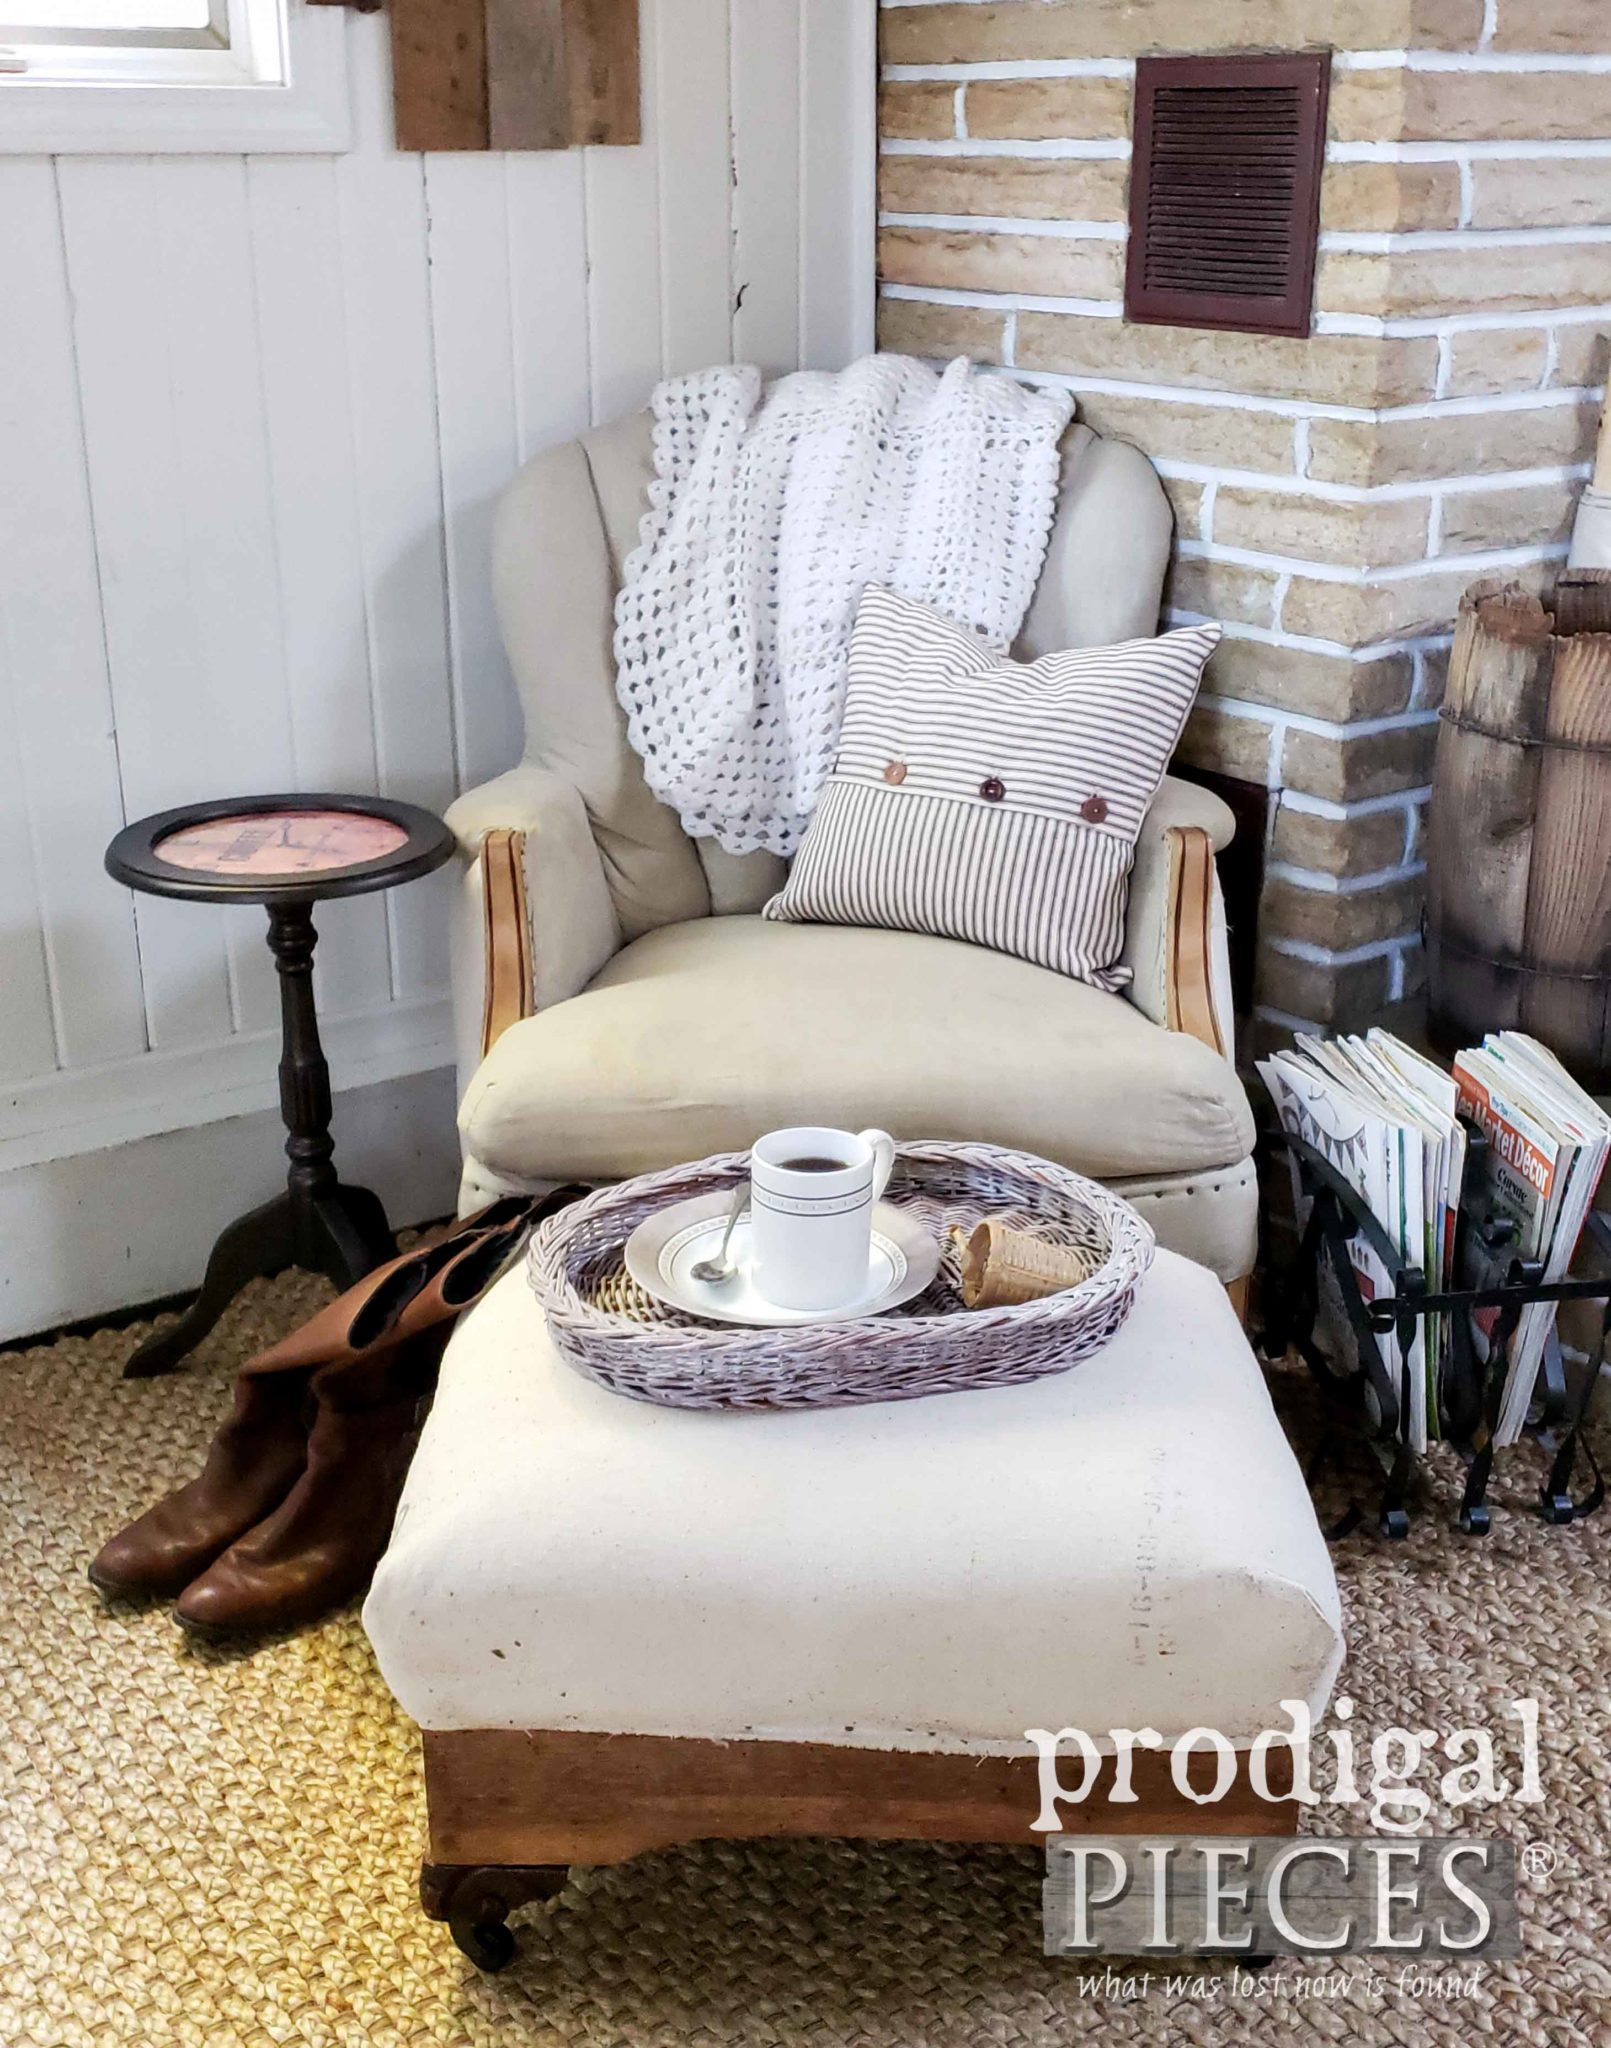 Rustic Farmhouse Style Living Room with DIY Clock Face Table | prodigalpieces.com #prodigalpieces #furniture #diy #home #homedecor